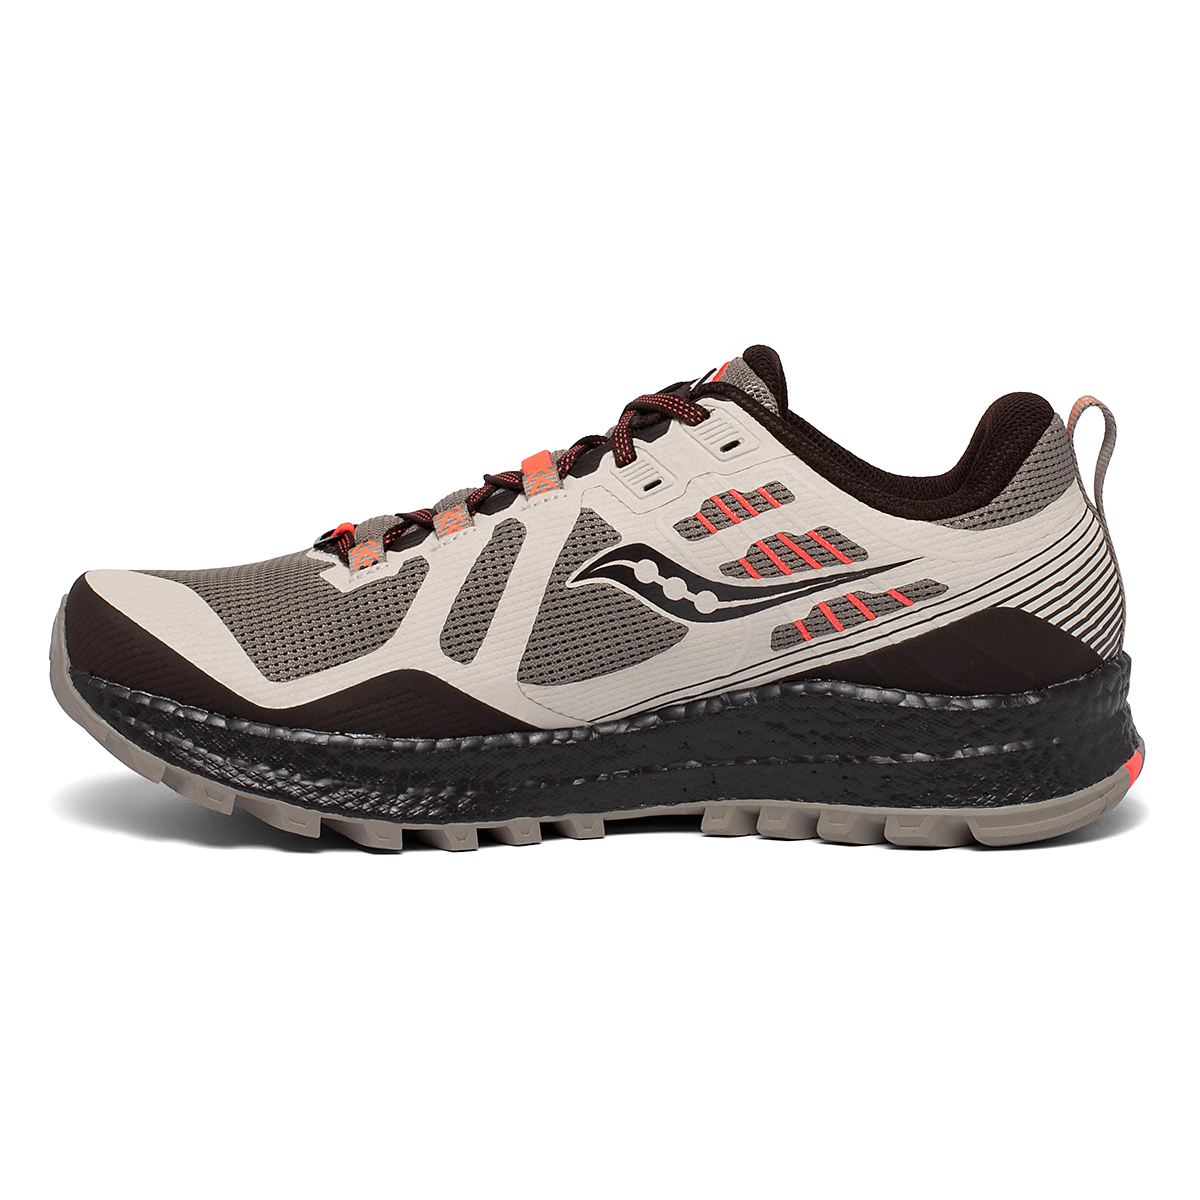 Men's Saucony Xodus 10 Trail Running Shoe - Color: Moonrock/Coffee - Size: 7 - Width: Regular, Moonrock/Coffee, large, image 2